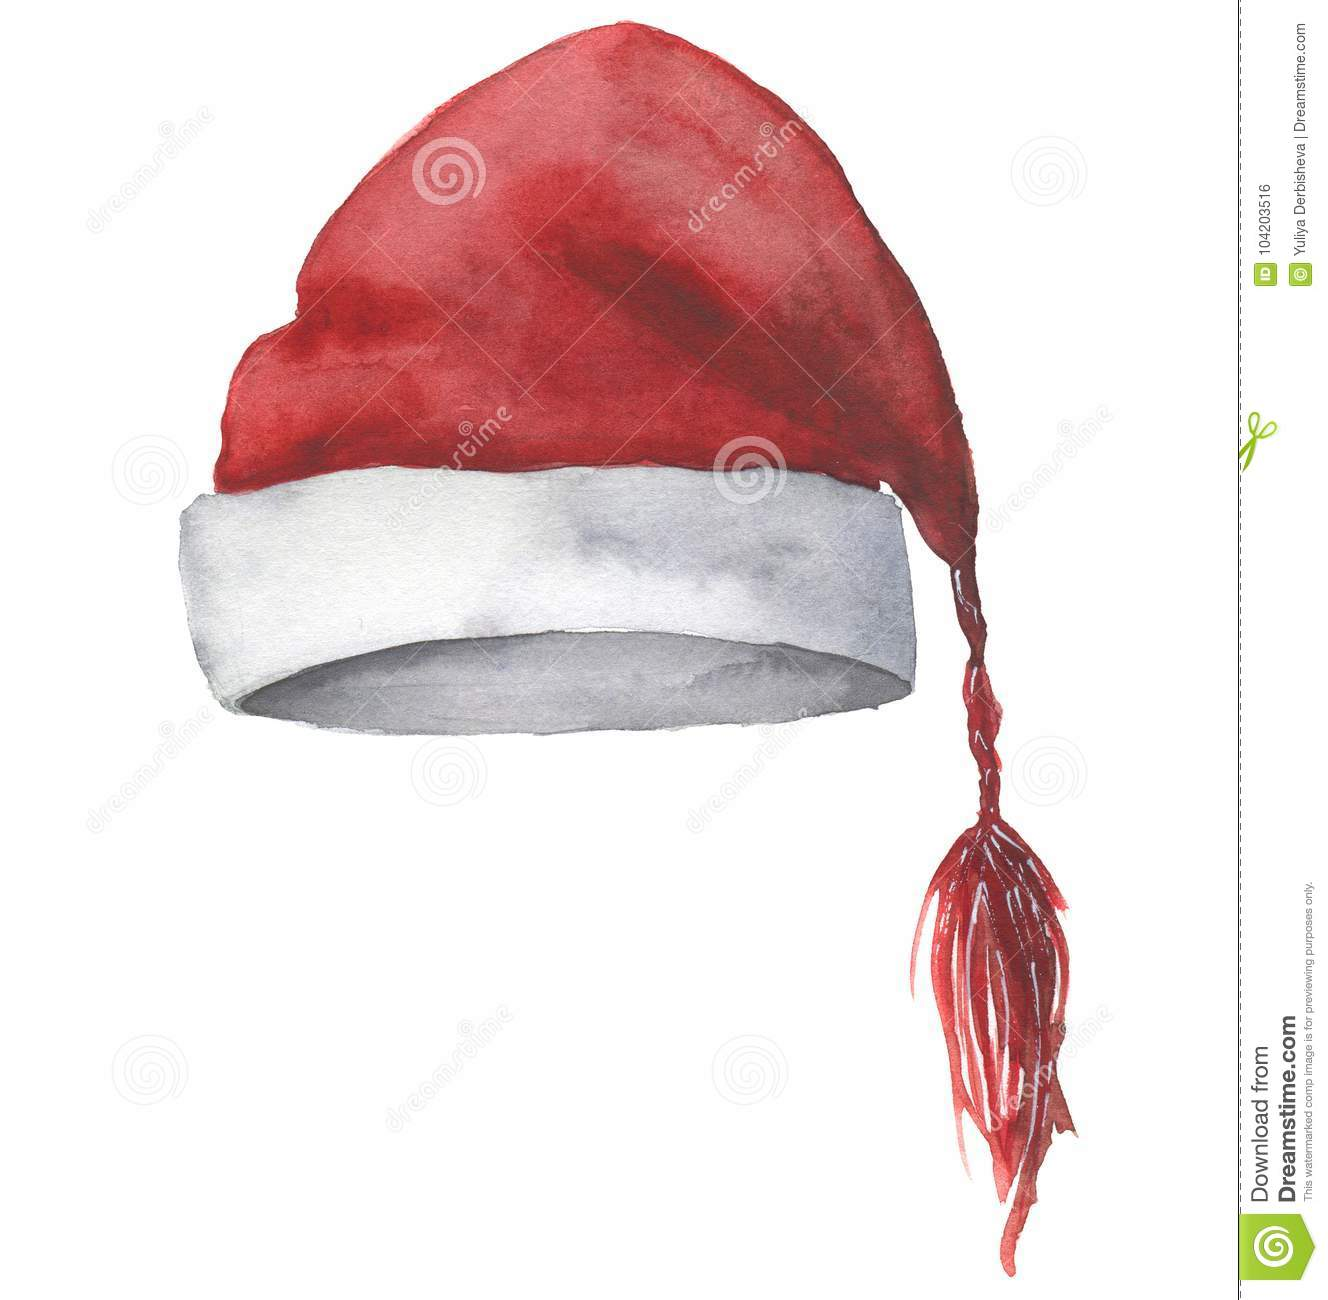 7f9334af252 Watercolor Santa hat. Hand painted Christmas red hat isolated on white  background. Winter illustration for design. Holiday print.